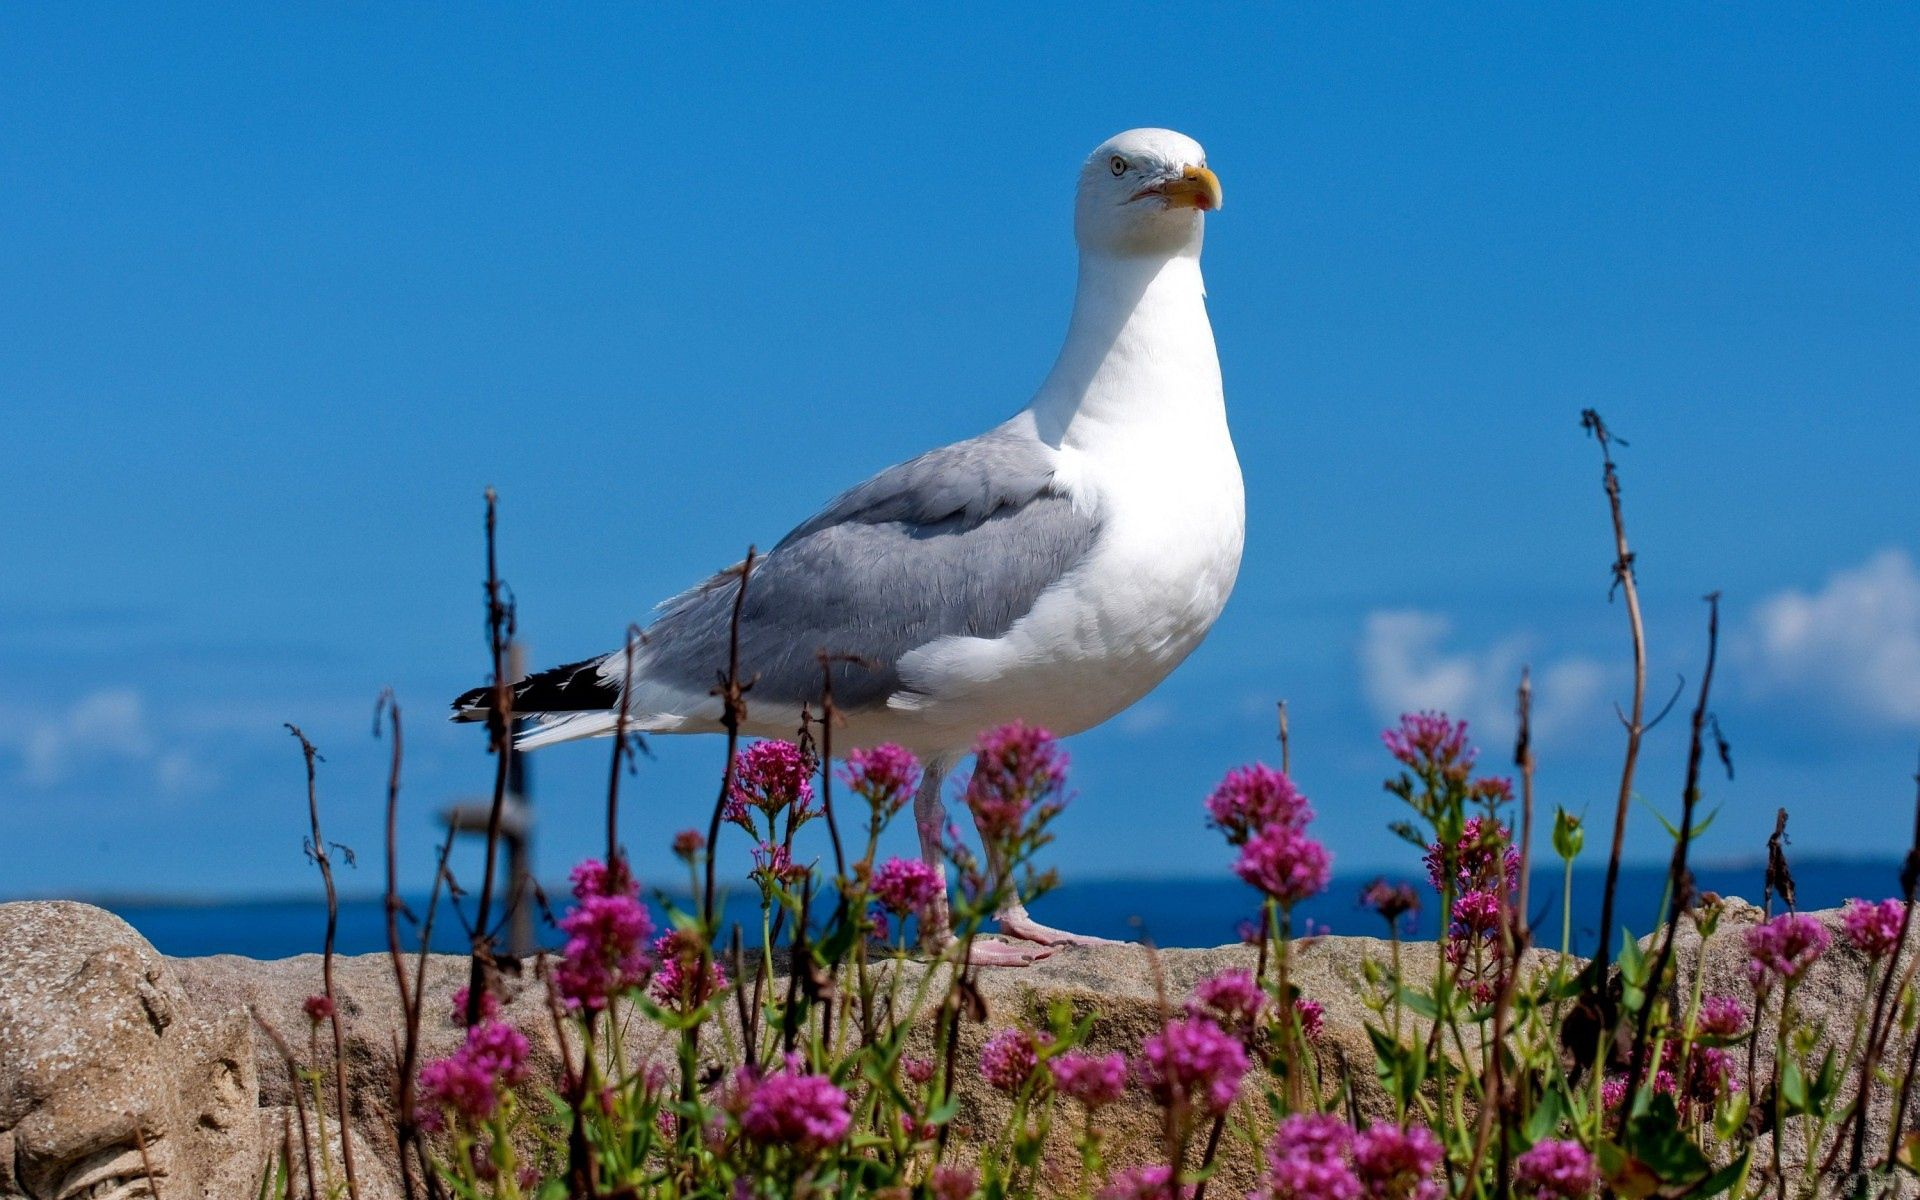 125158 download wallpaper Animals, Gull, Seagull, Bird, Sky, Color, Light Coloured, Light screensavers and pictures for free